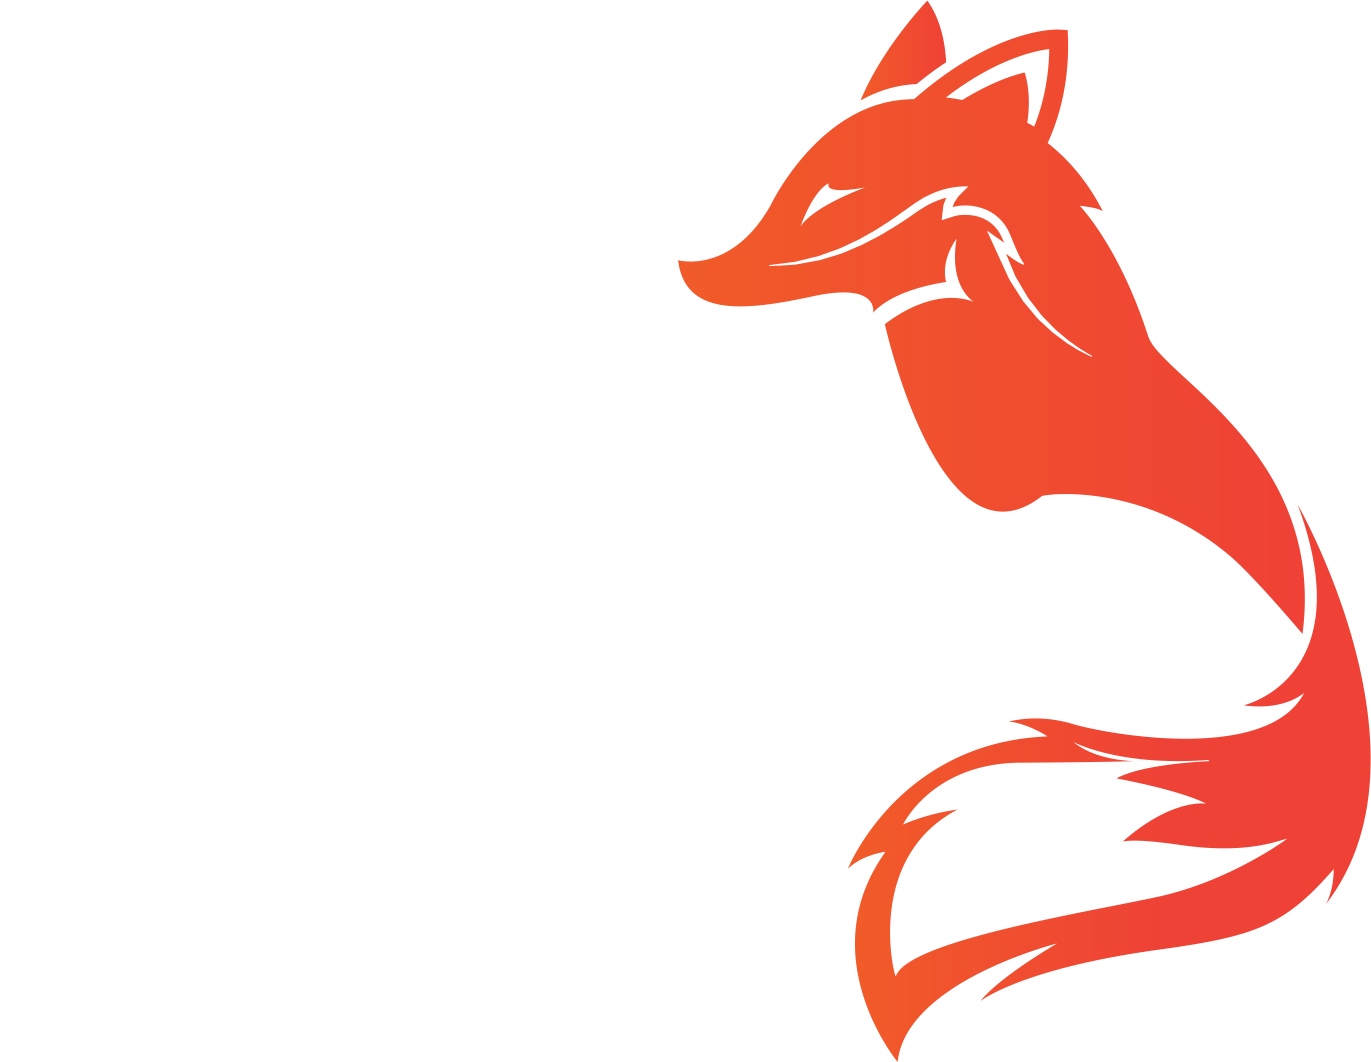 Justsume